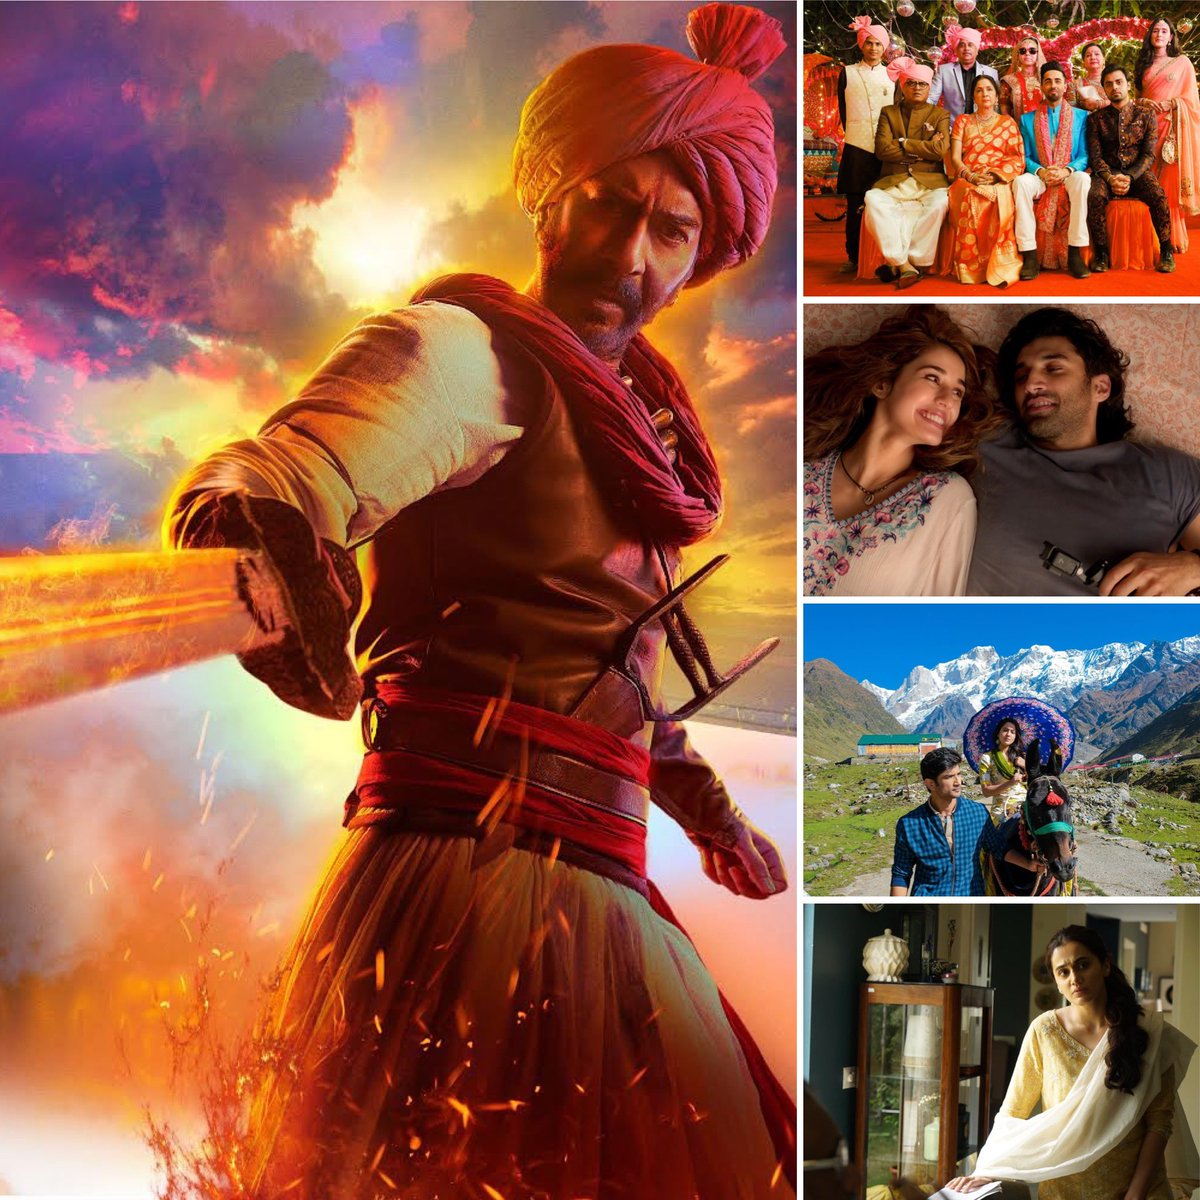 As cinemas ready to reopen their doors from this week onwards, the list of #Hindi films scheduled for re-release this week is OFFICIALLY announced... ⭐️ #Tanhaji ⭐️ #ShubhMangalZyadaSaavdhan ⭐️ #Malang ⭐️ #Kedarnath ⭐️ #Thappad More films will be scheduled in coming days. https://t.co/4Dm7xCjIlG